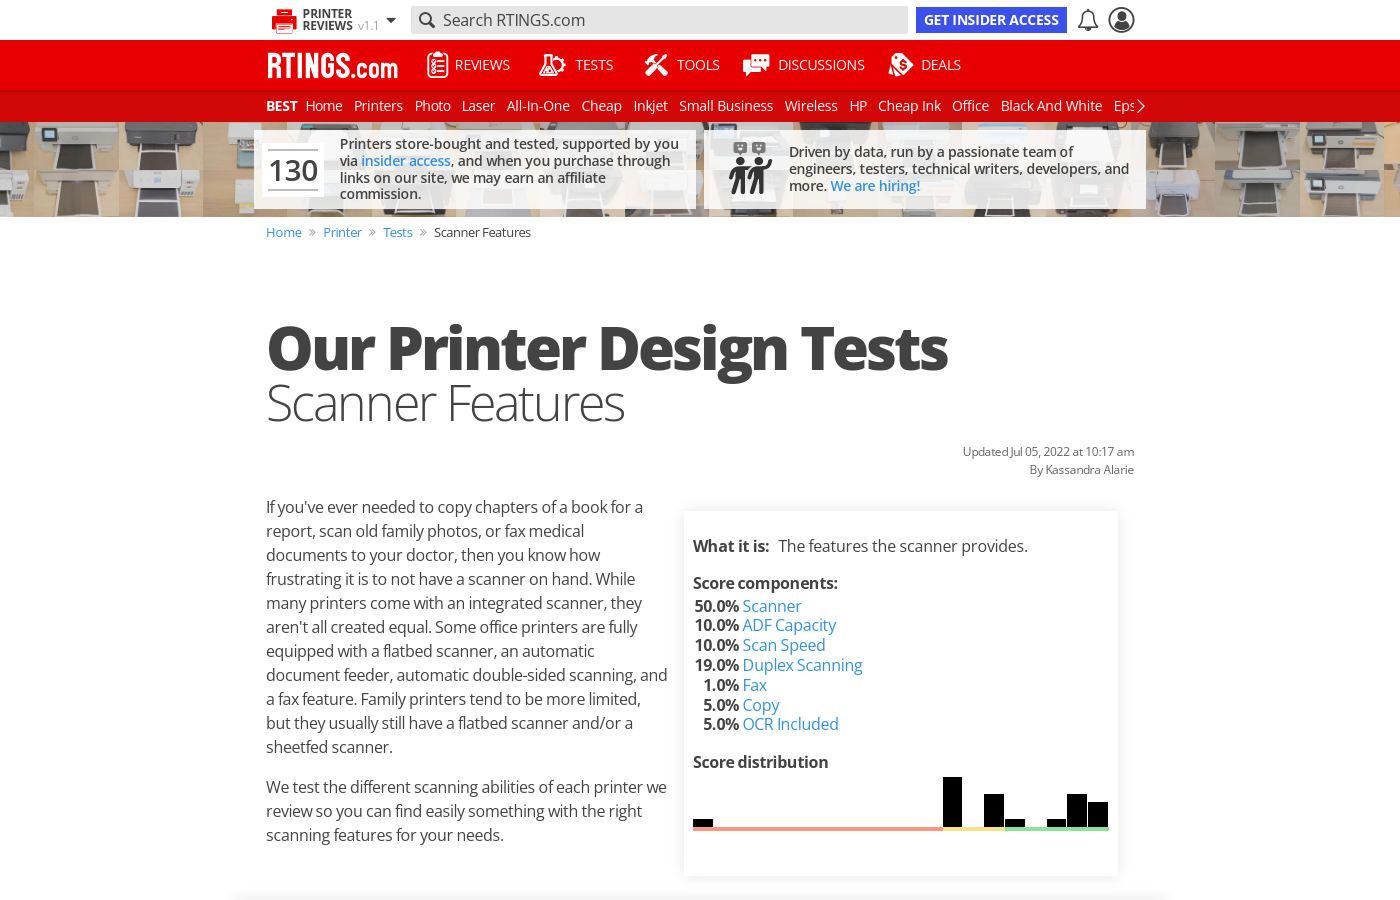 Our Scanner Score and Tests: Printers